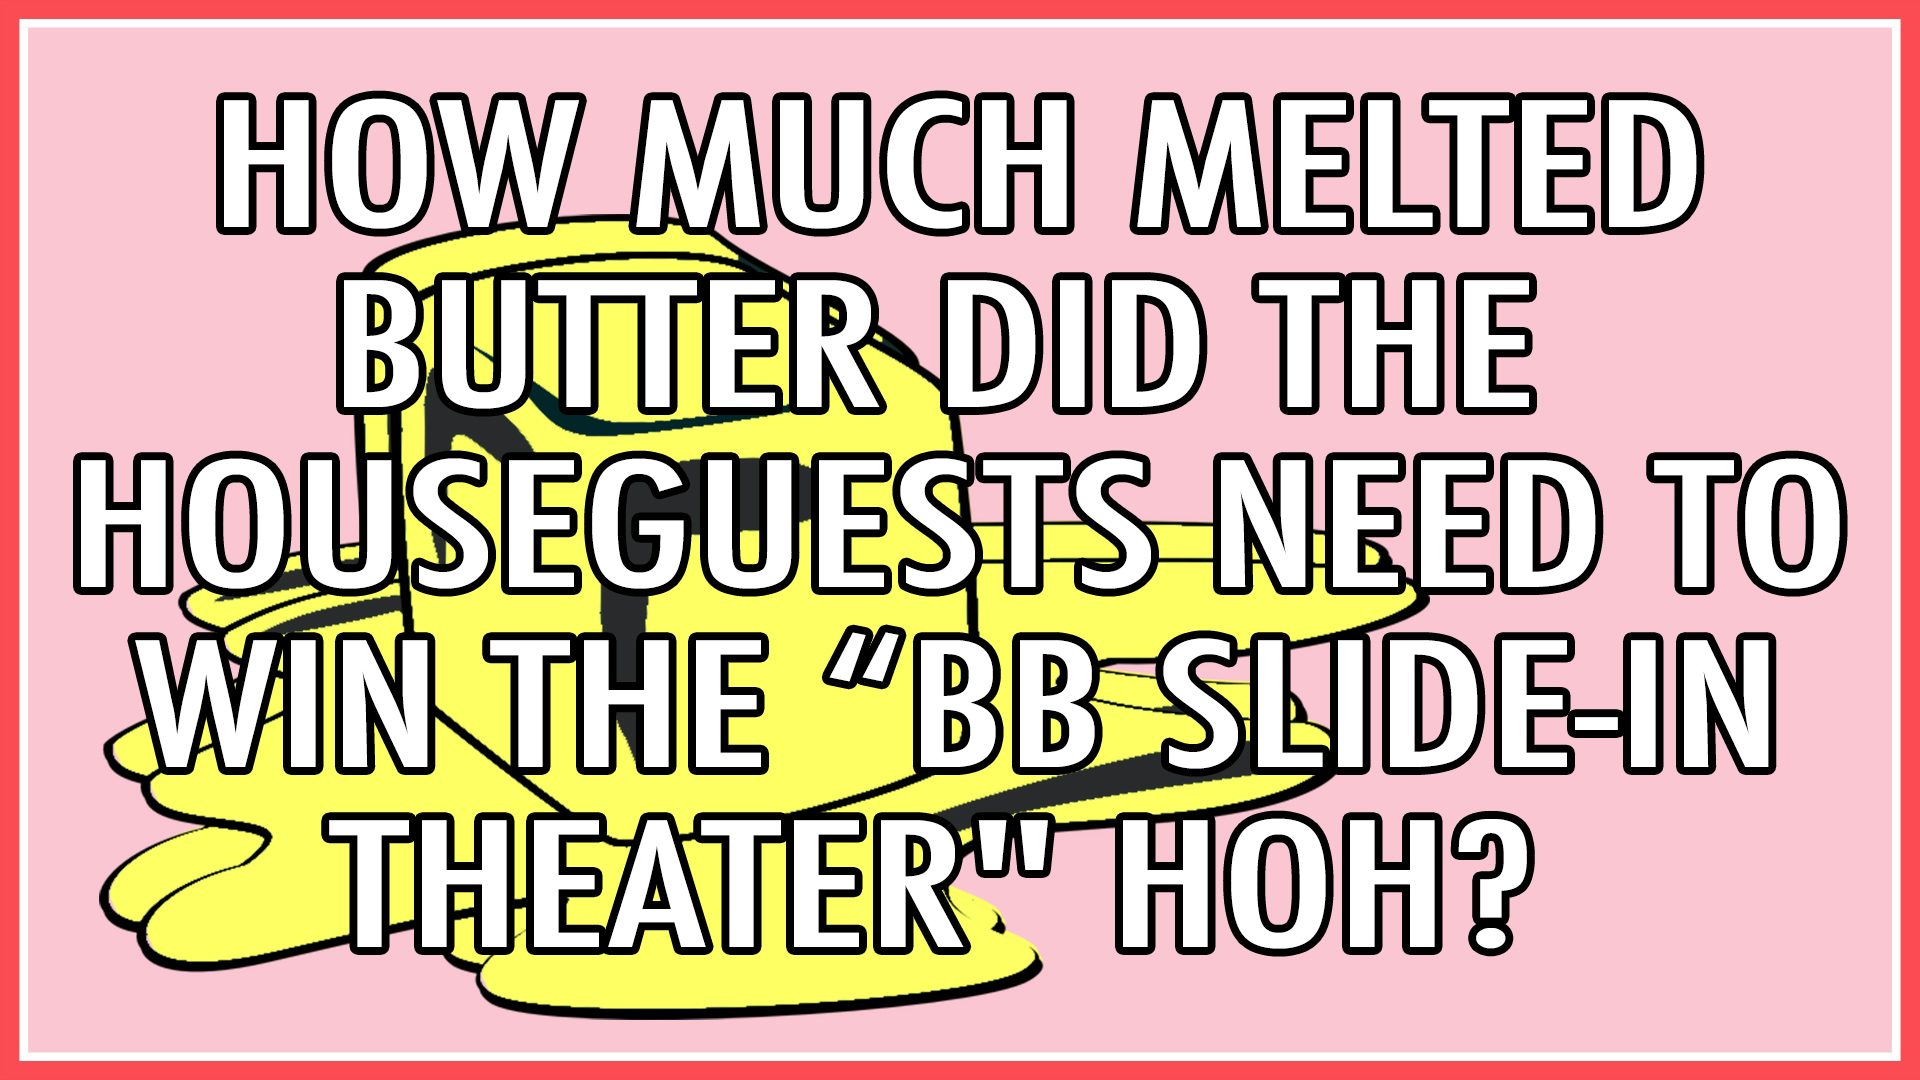 How much melted butter did the Houseguests need to win the